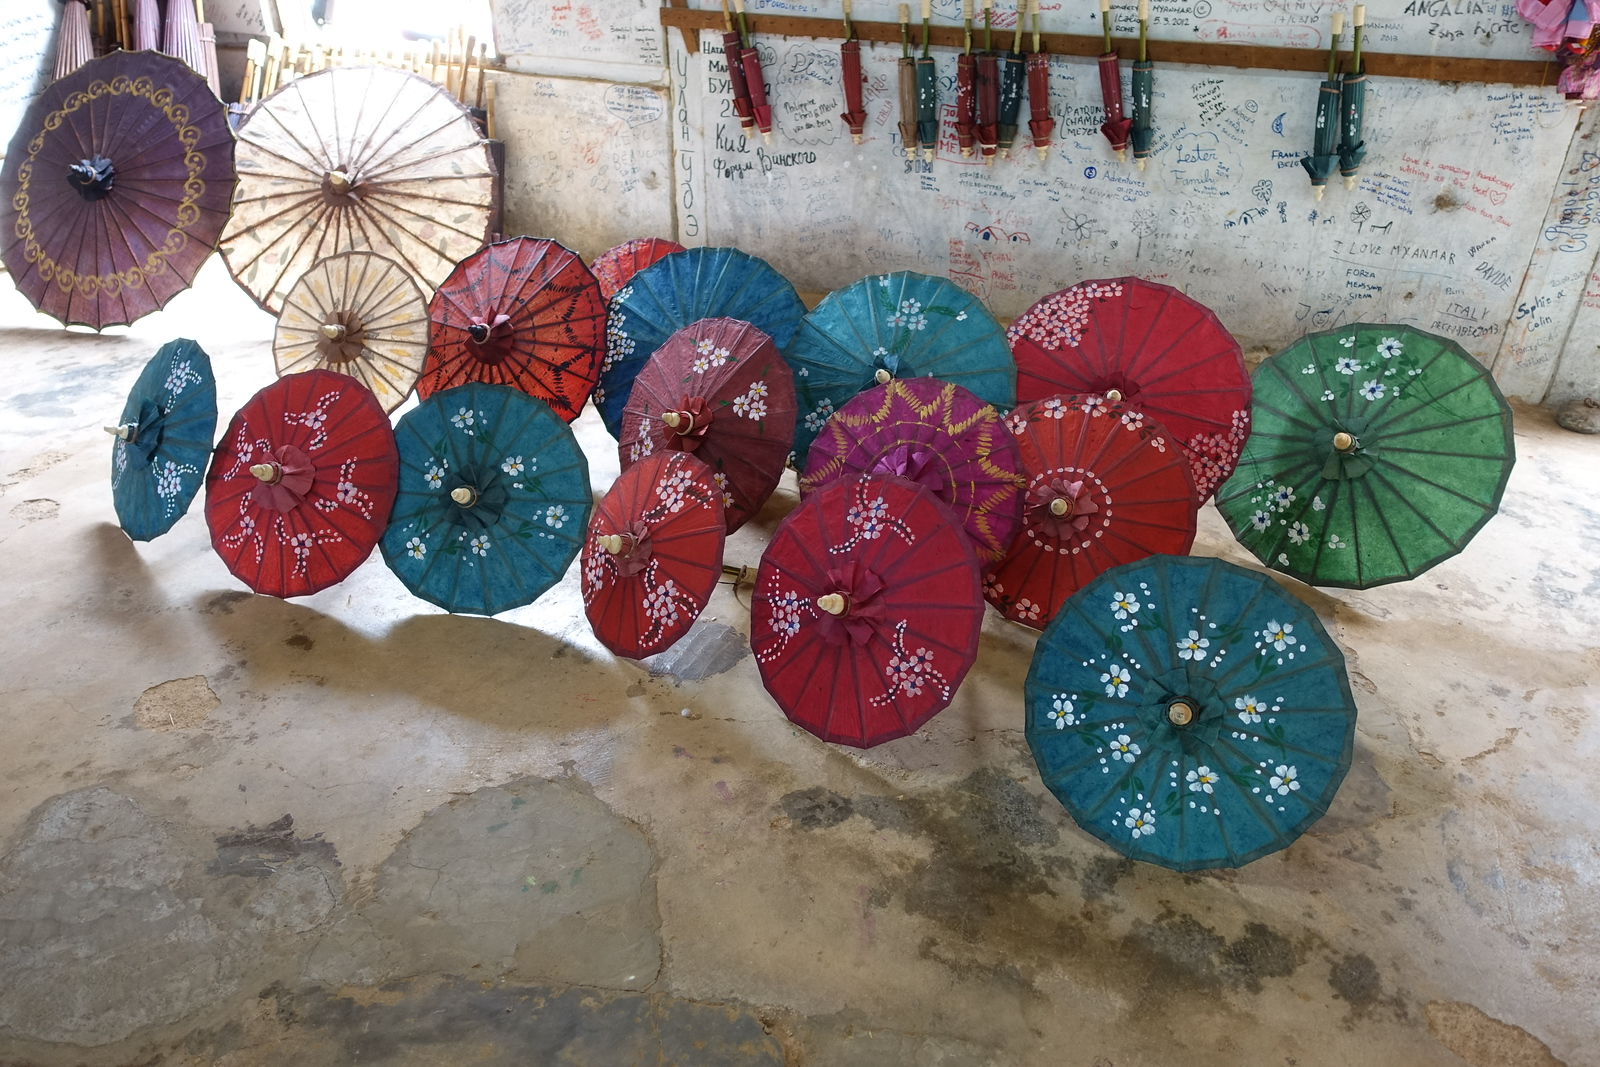 Pindaya – Homemade Paper Umbrellas